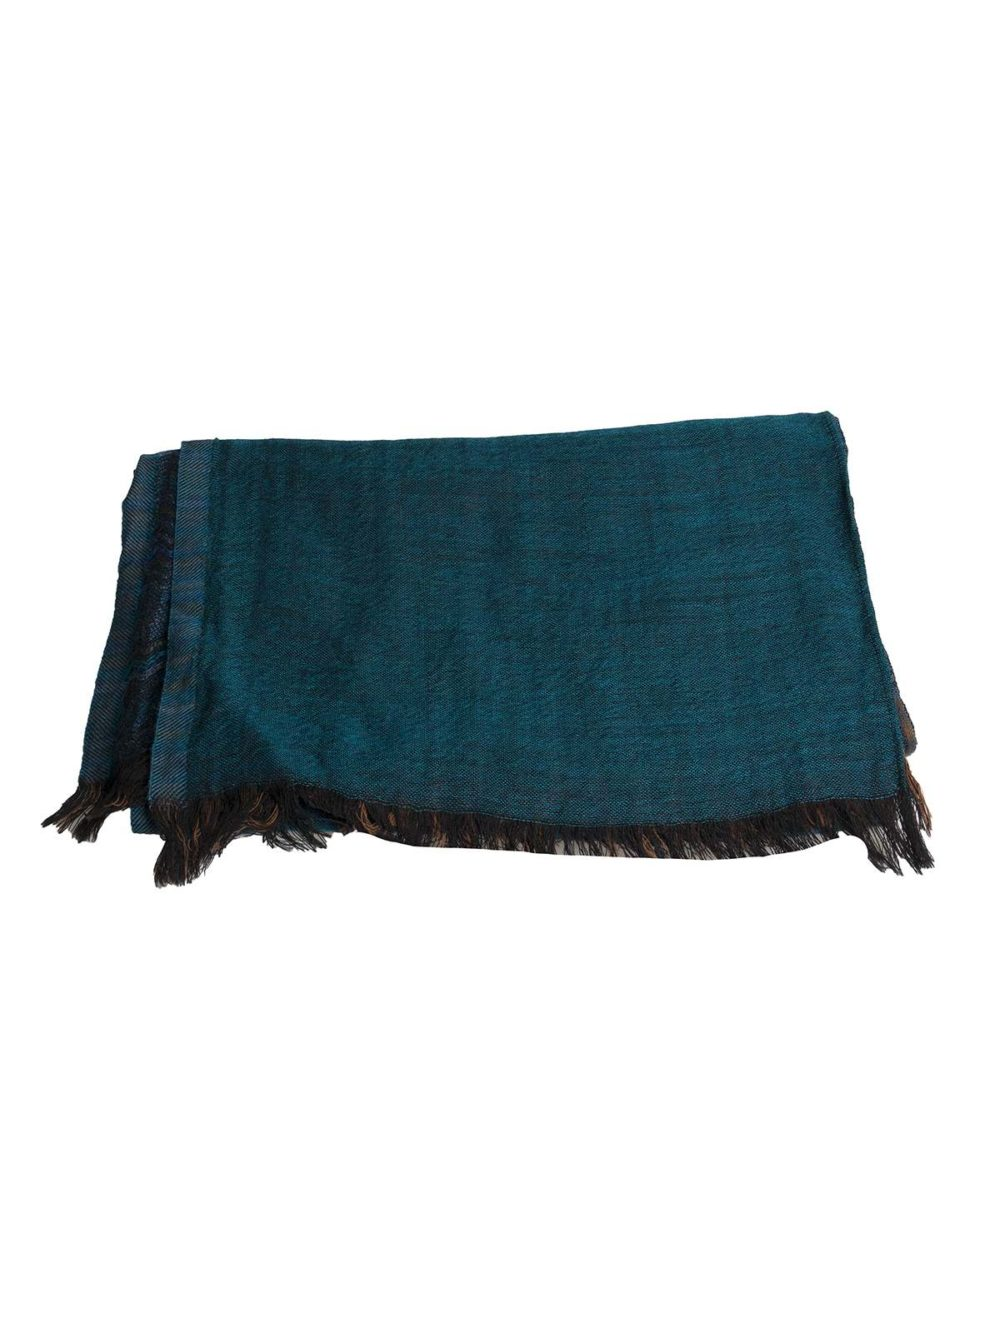 SCOTT3 Scarf Blue manicay Katie Kerr Women's Accessories Women's Clothing